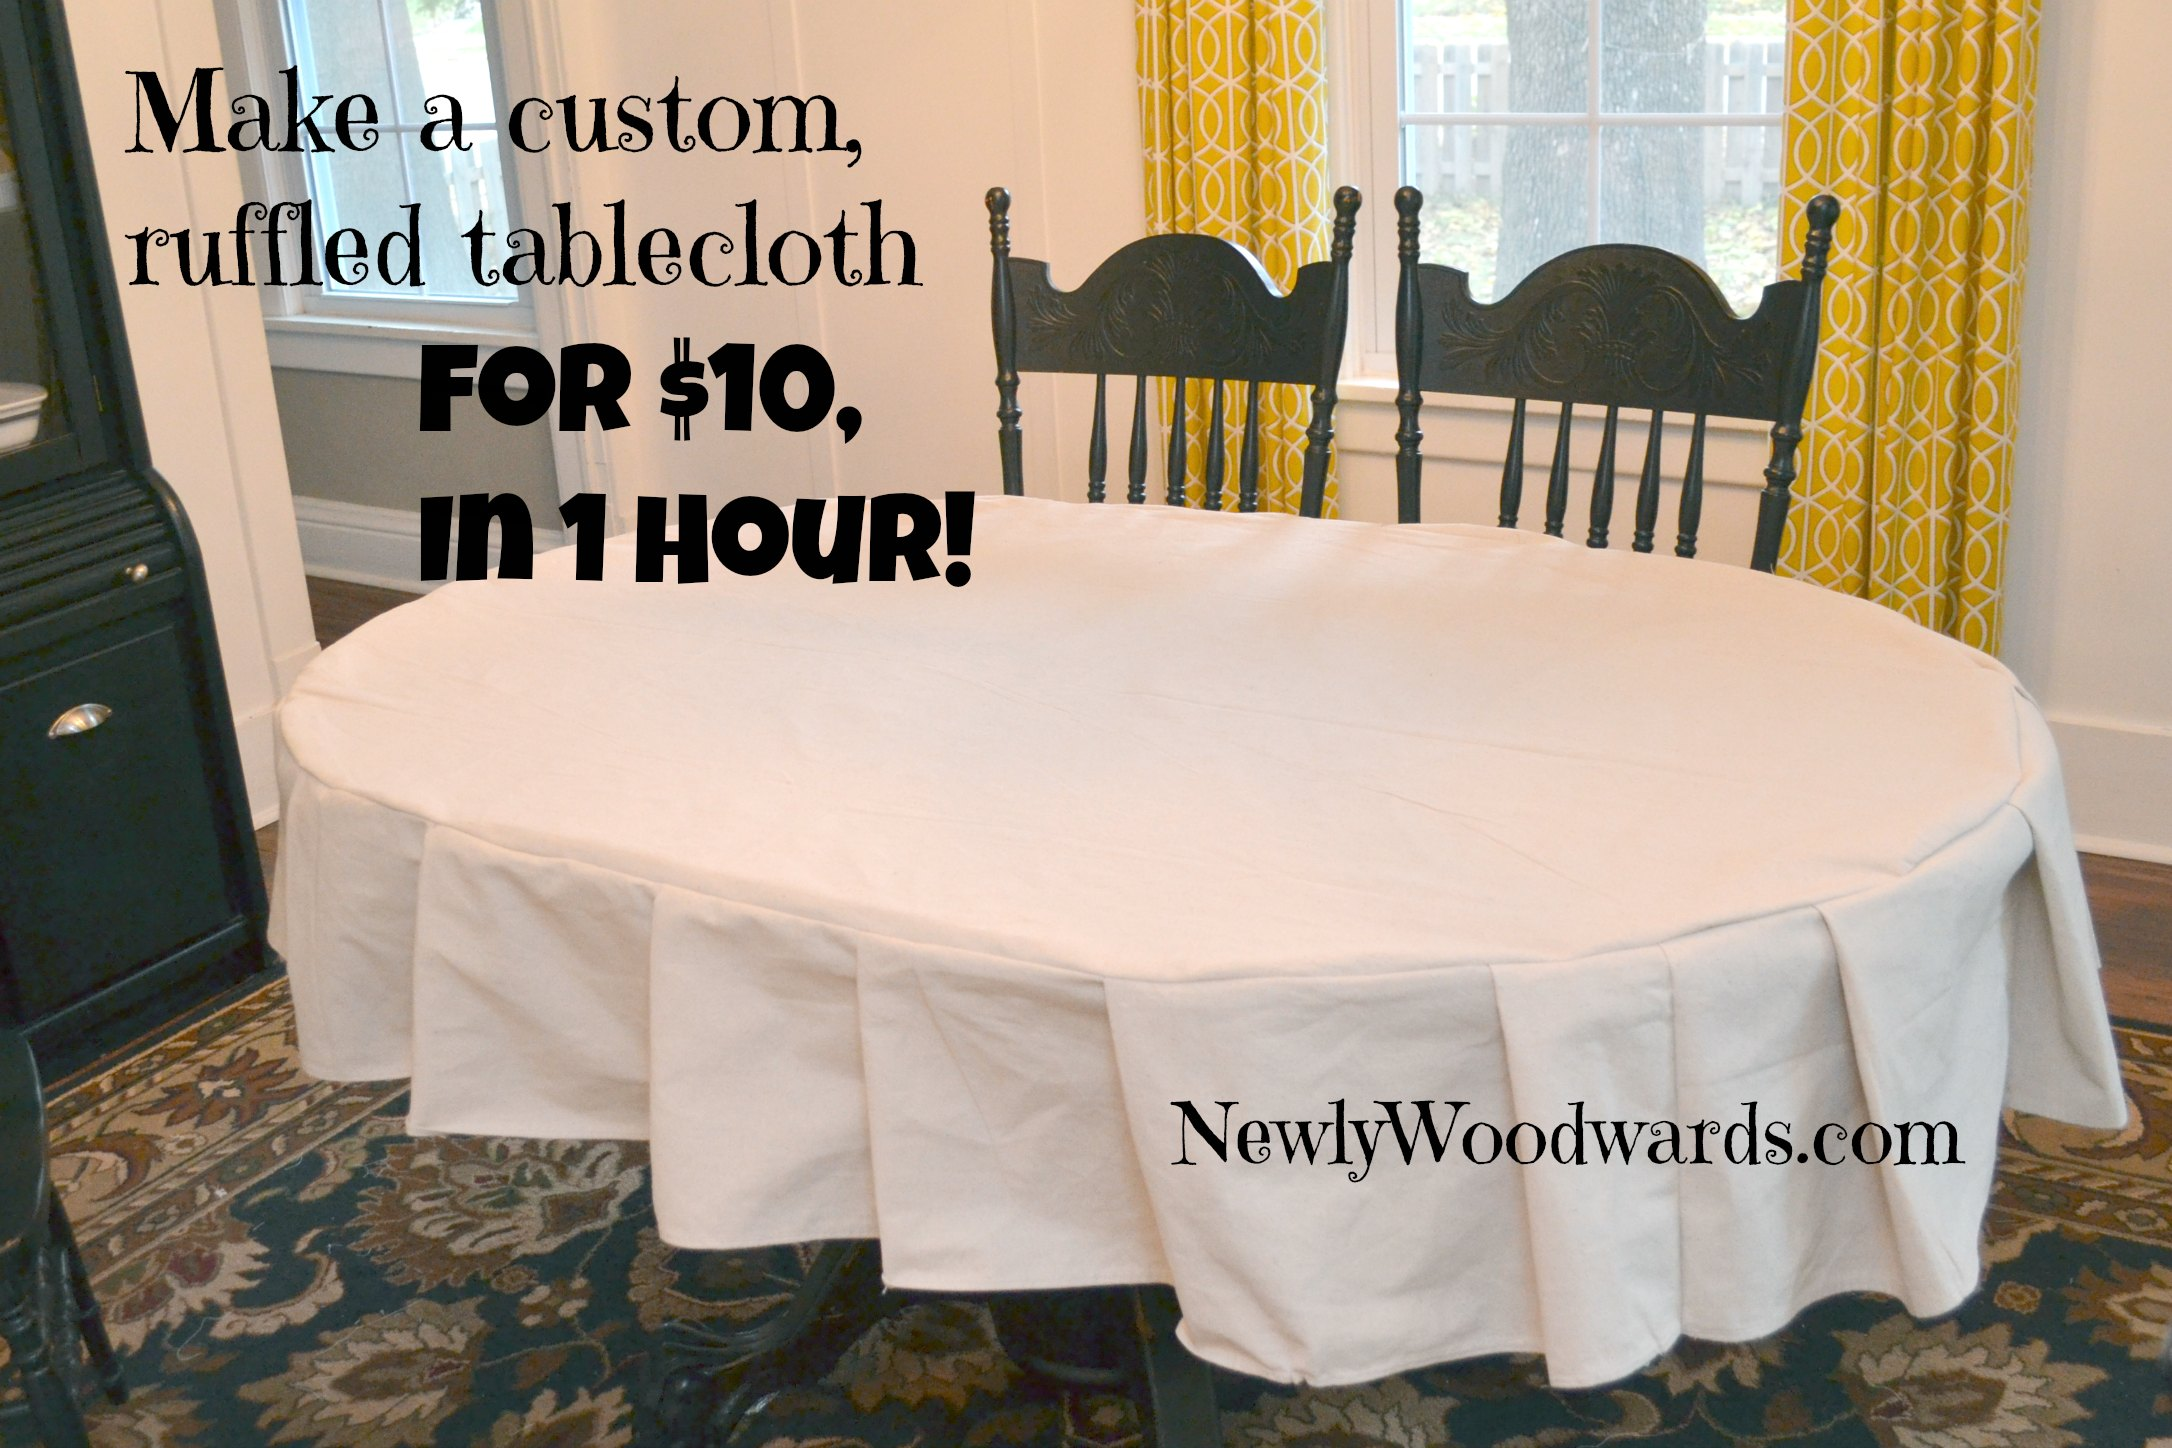 Etonnant Ruffled Tablecloth Custom DIY